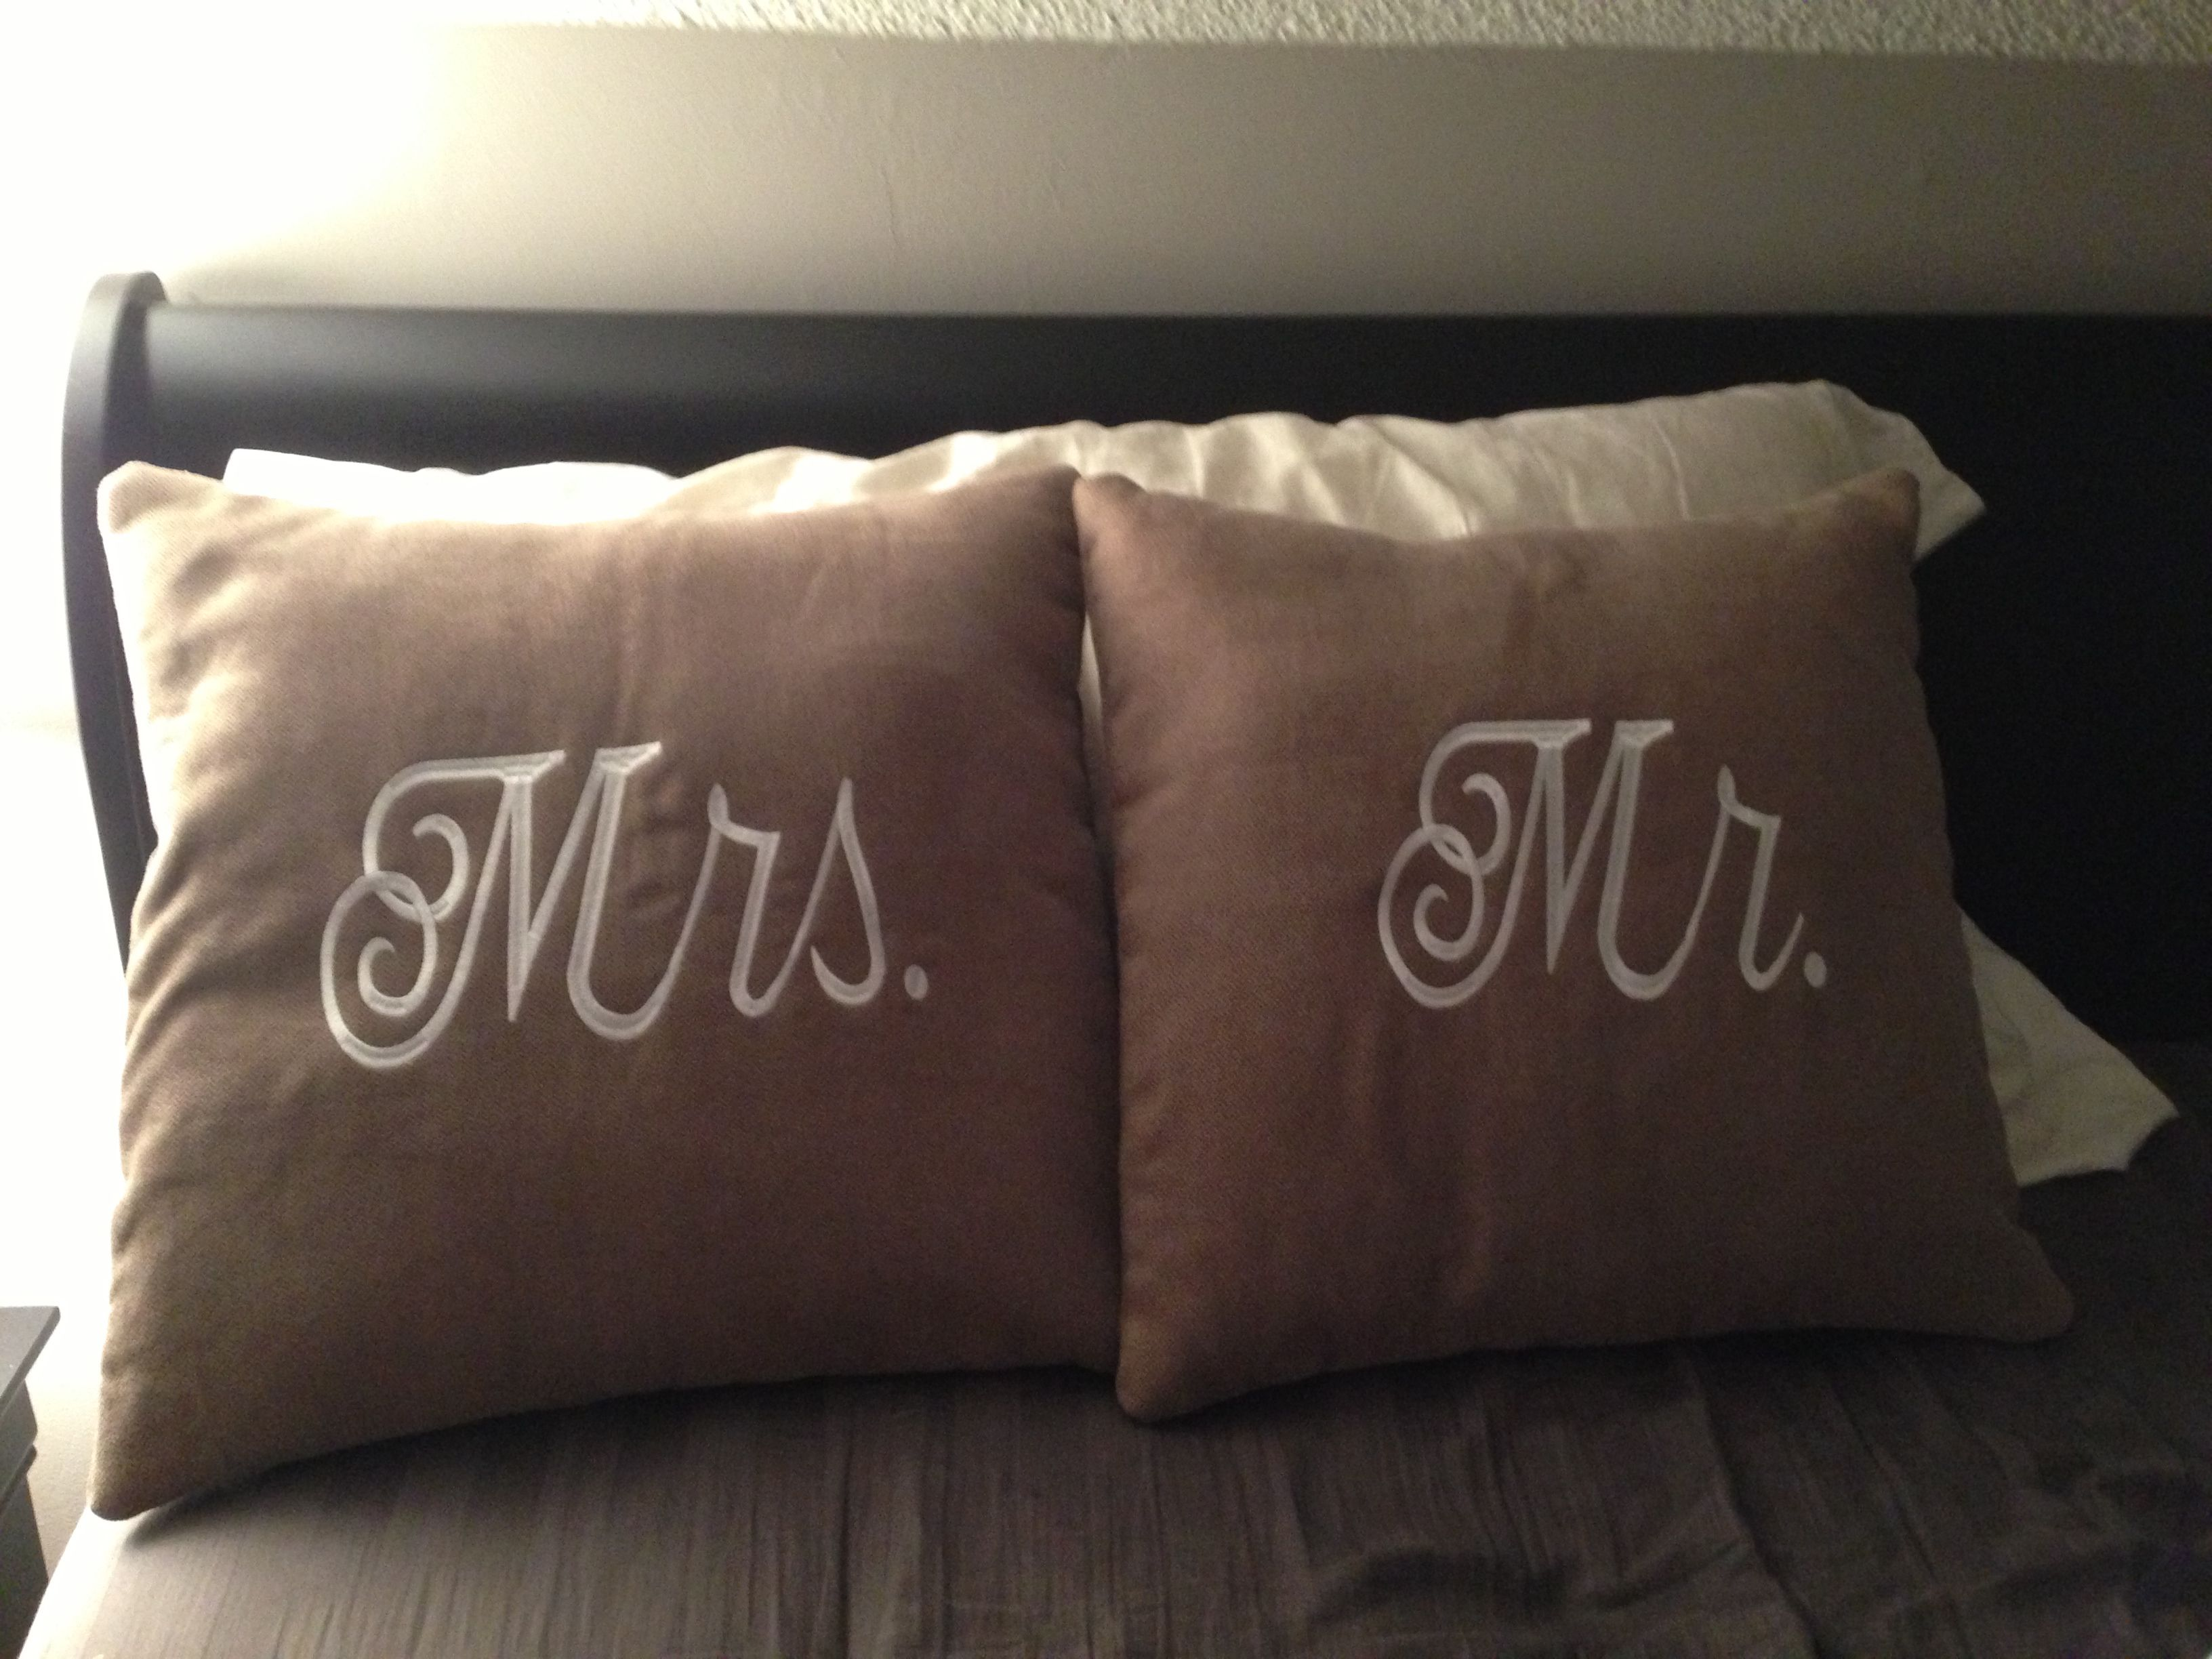 Mr. & Mrs. Pillows. Great wedding gift. I made these for my girlfriend's wedding gift. They turned out great ! #diy #wedding